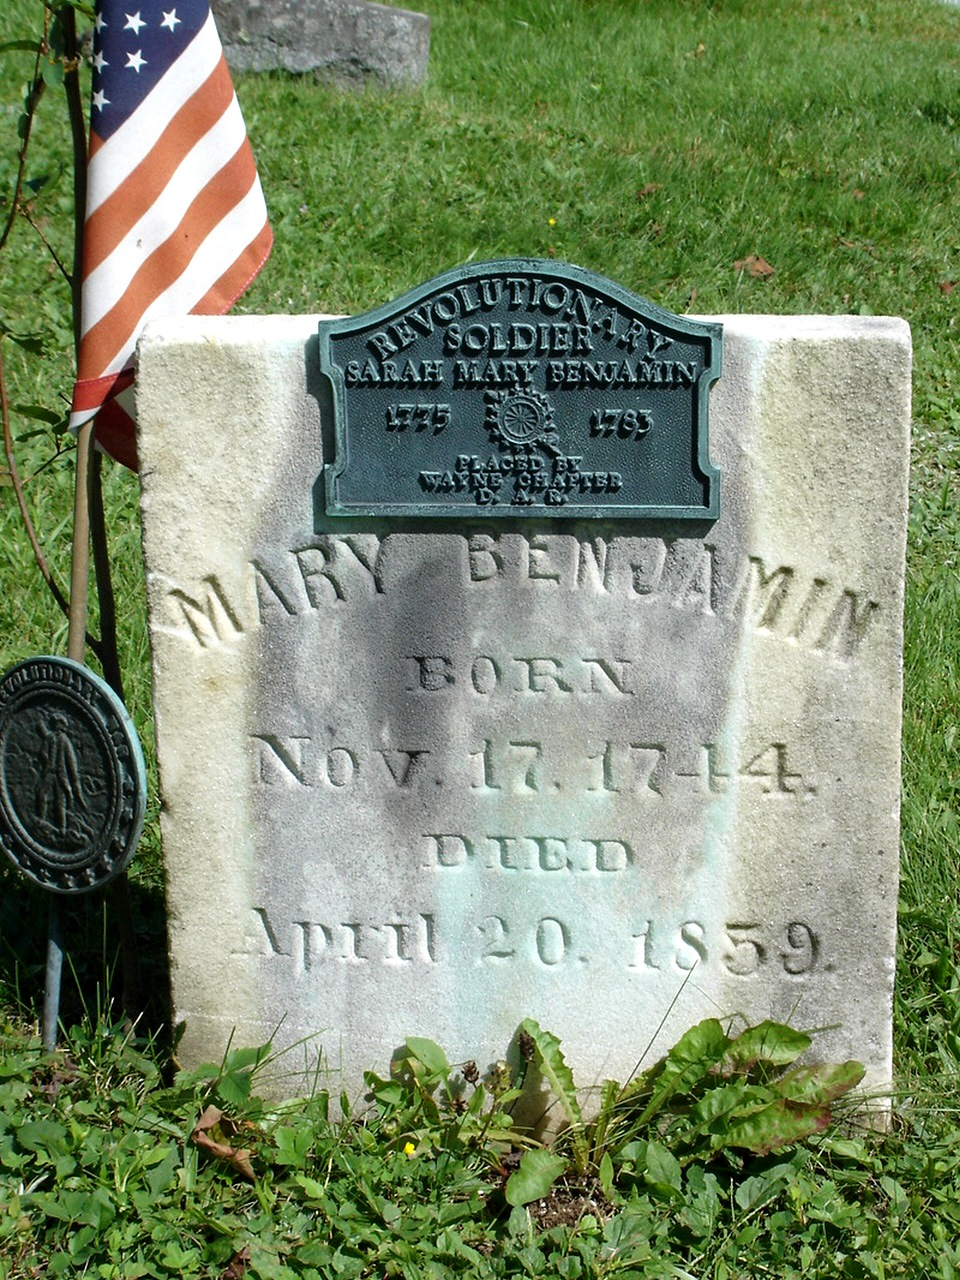 The grave of Sarah Mary Benjamin is located in Green Grove Cemetery, PA.